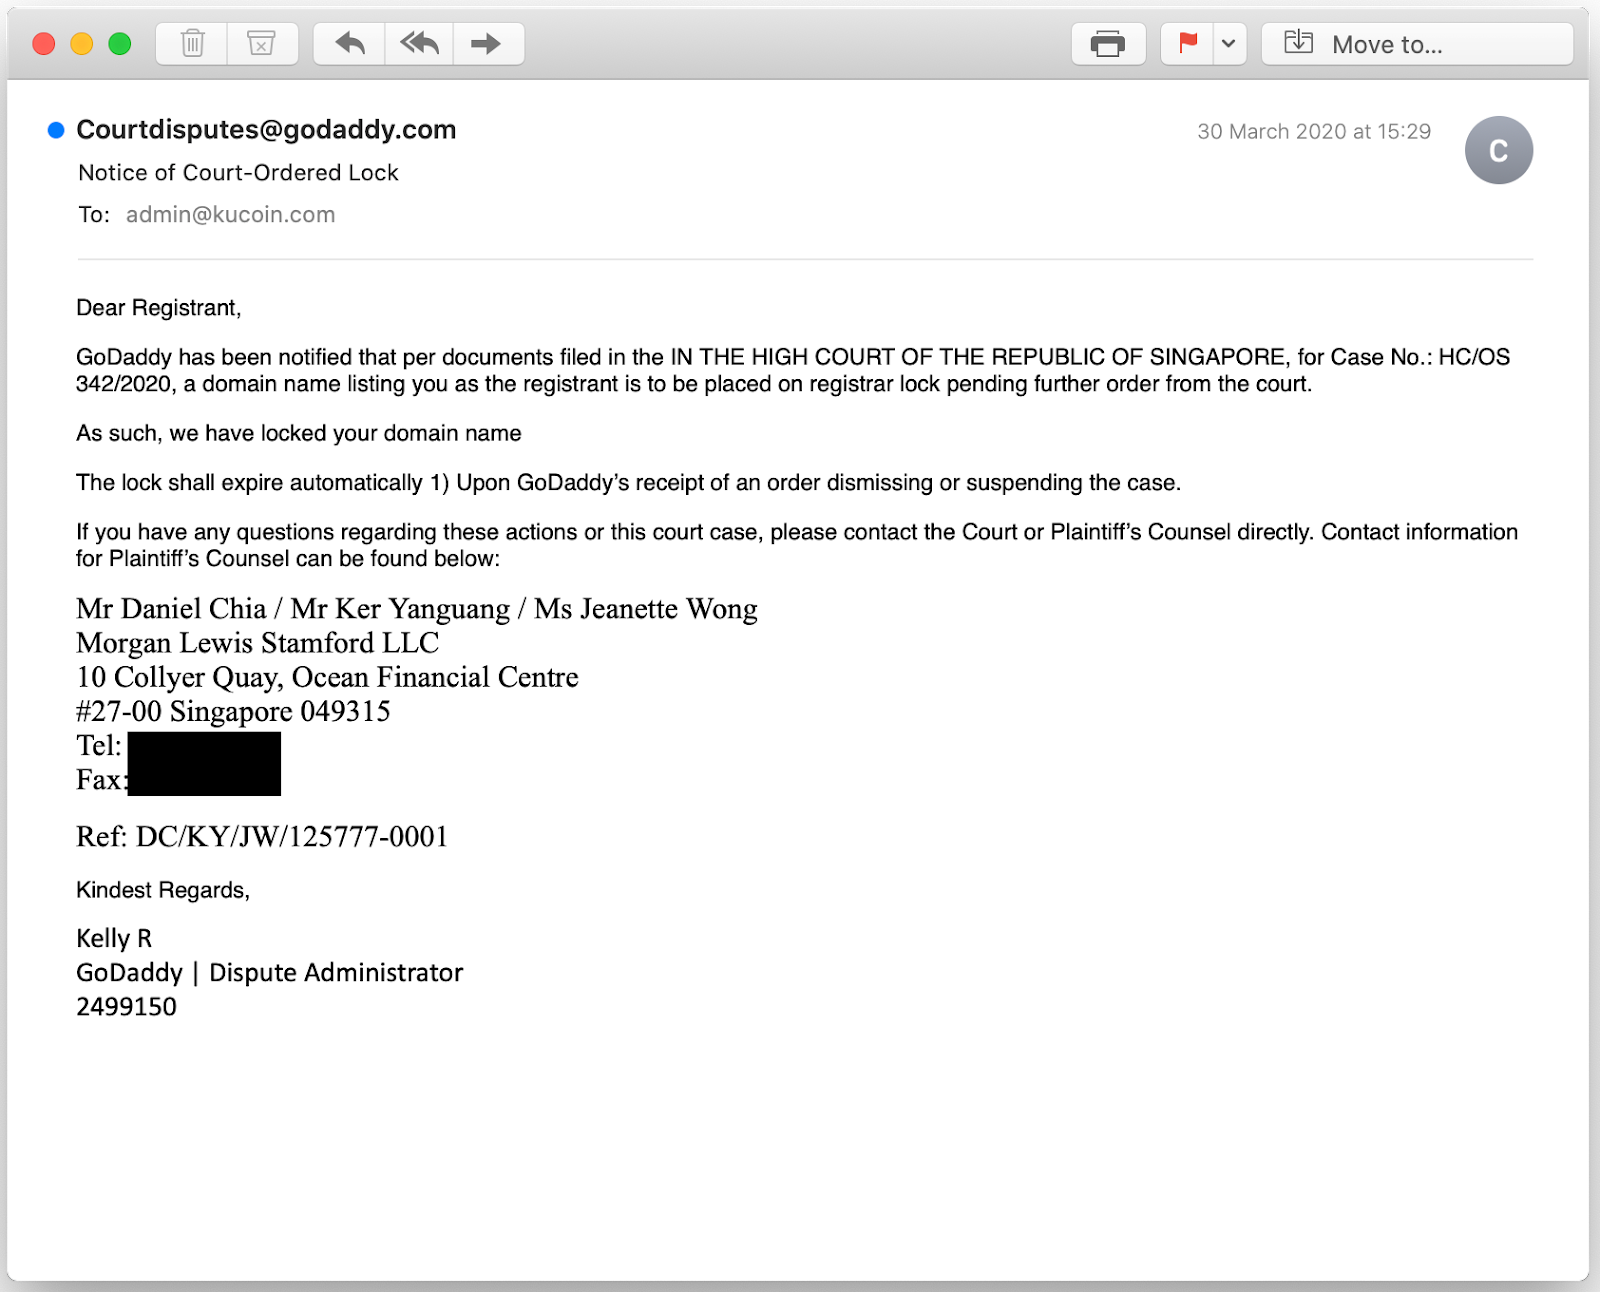 The email from GoDaddy to KuCoin, showing its domain locked by court order in Singapore